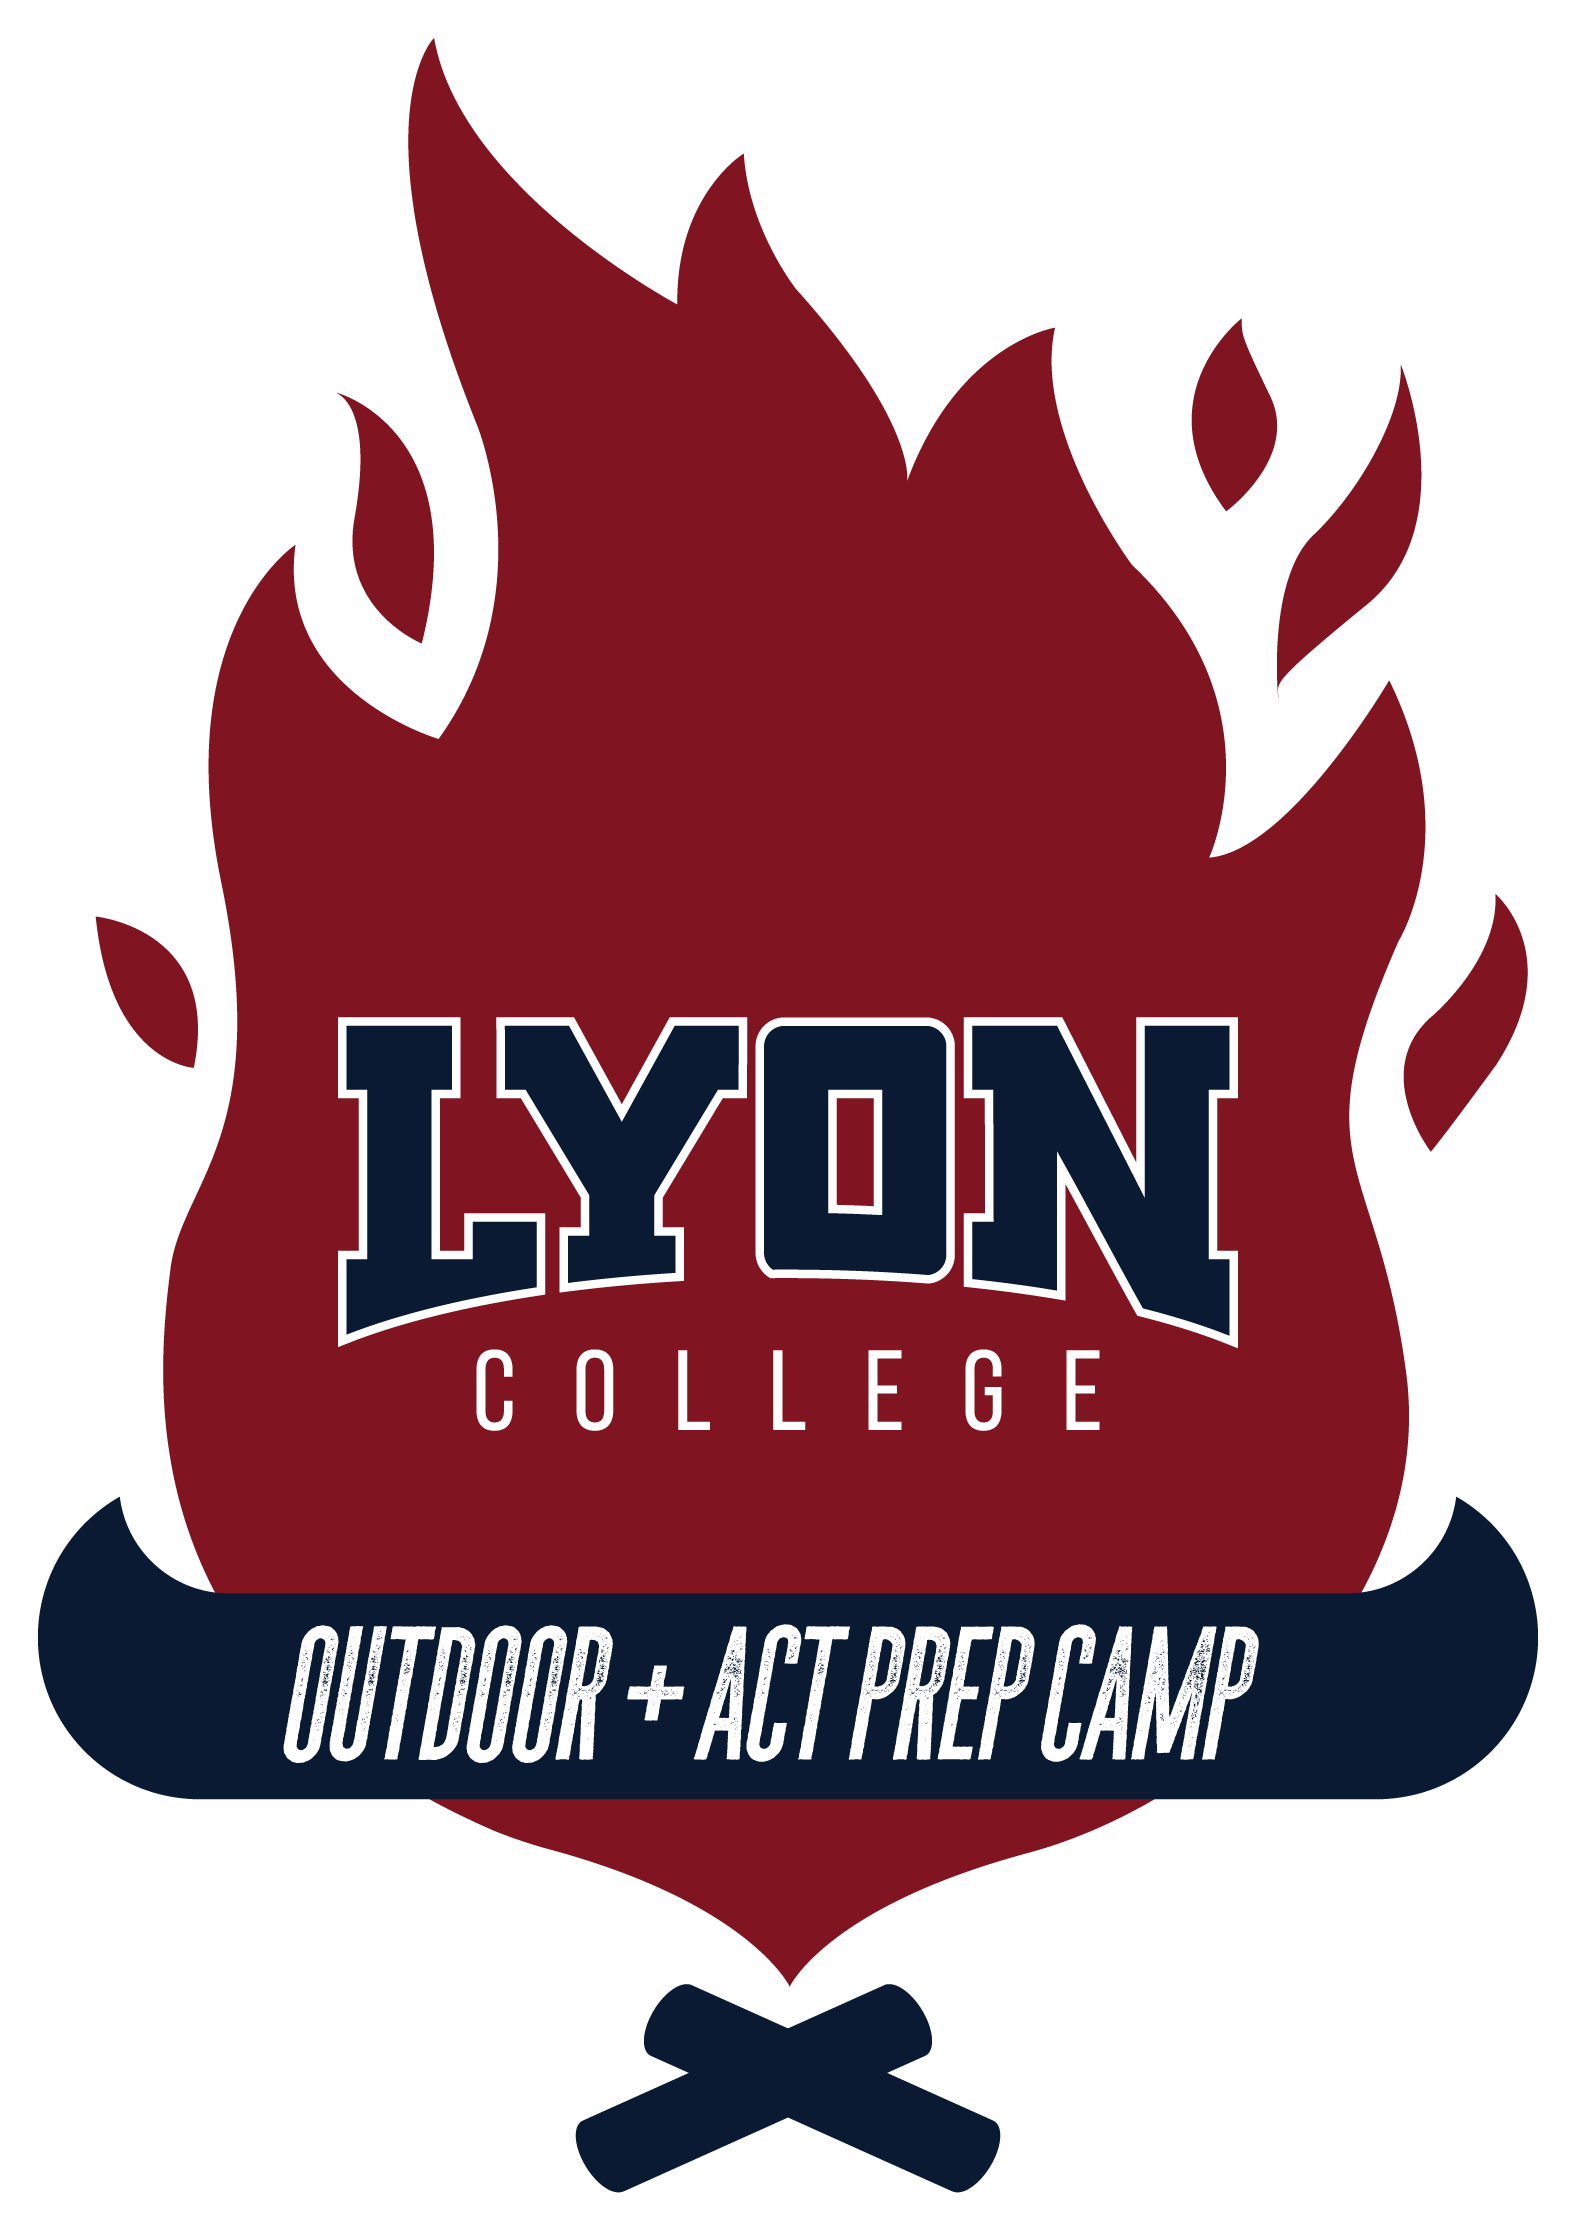 Lyon College ACT Prep Camp Logo